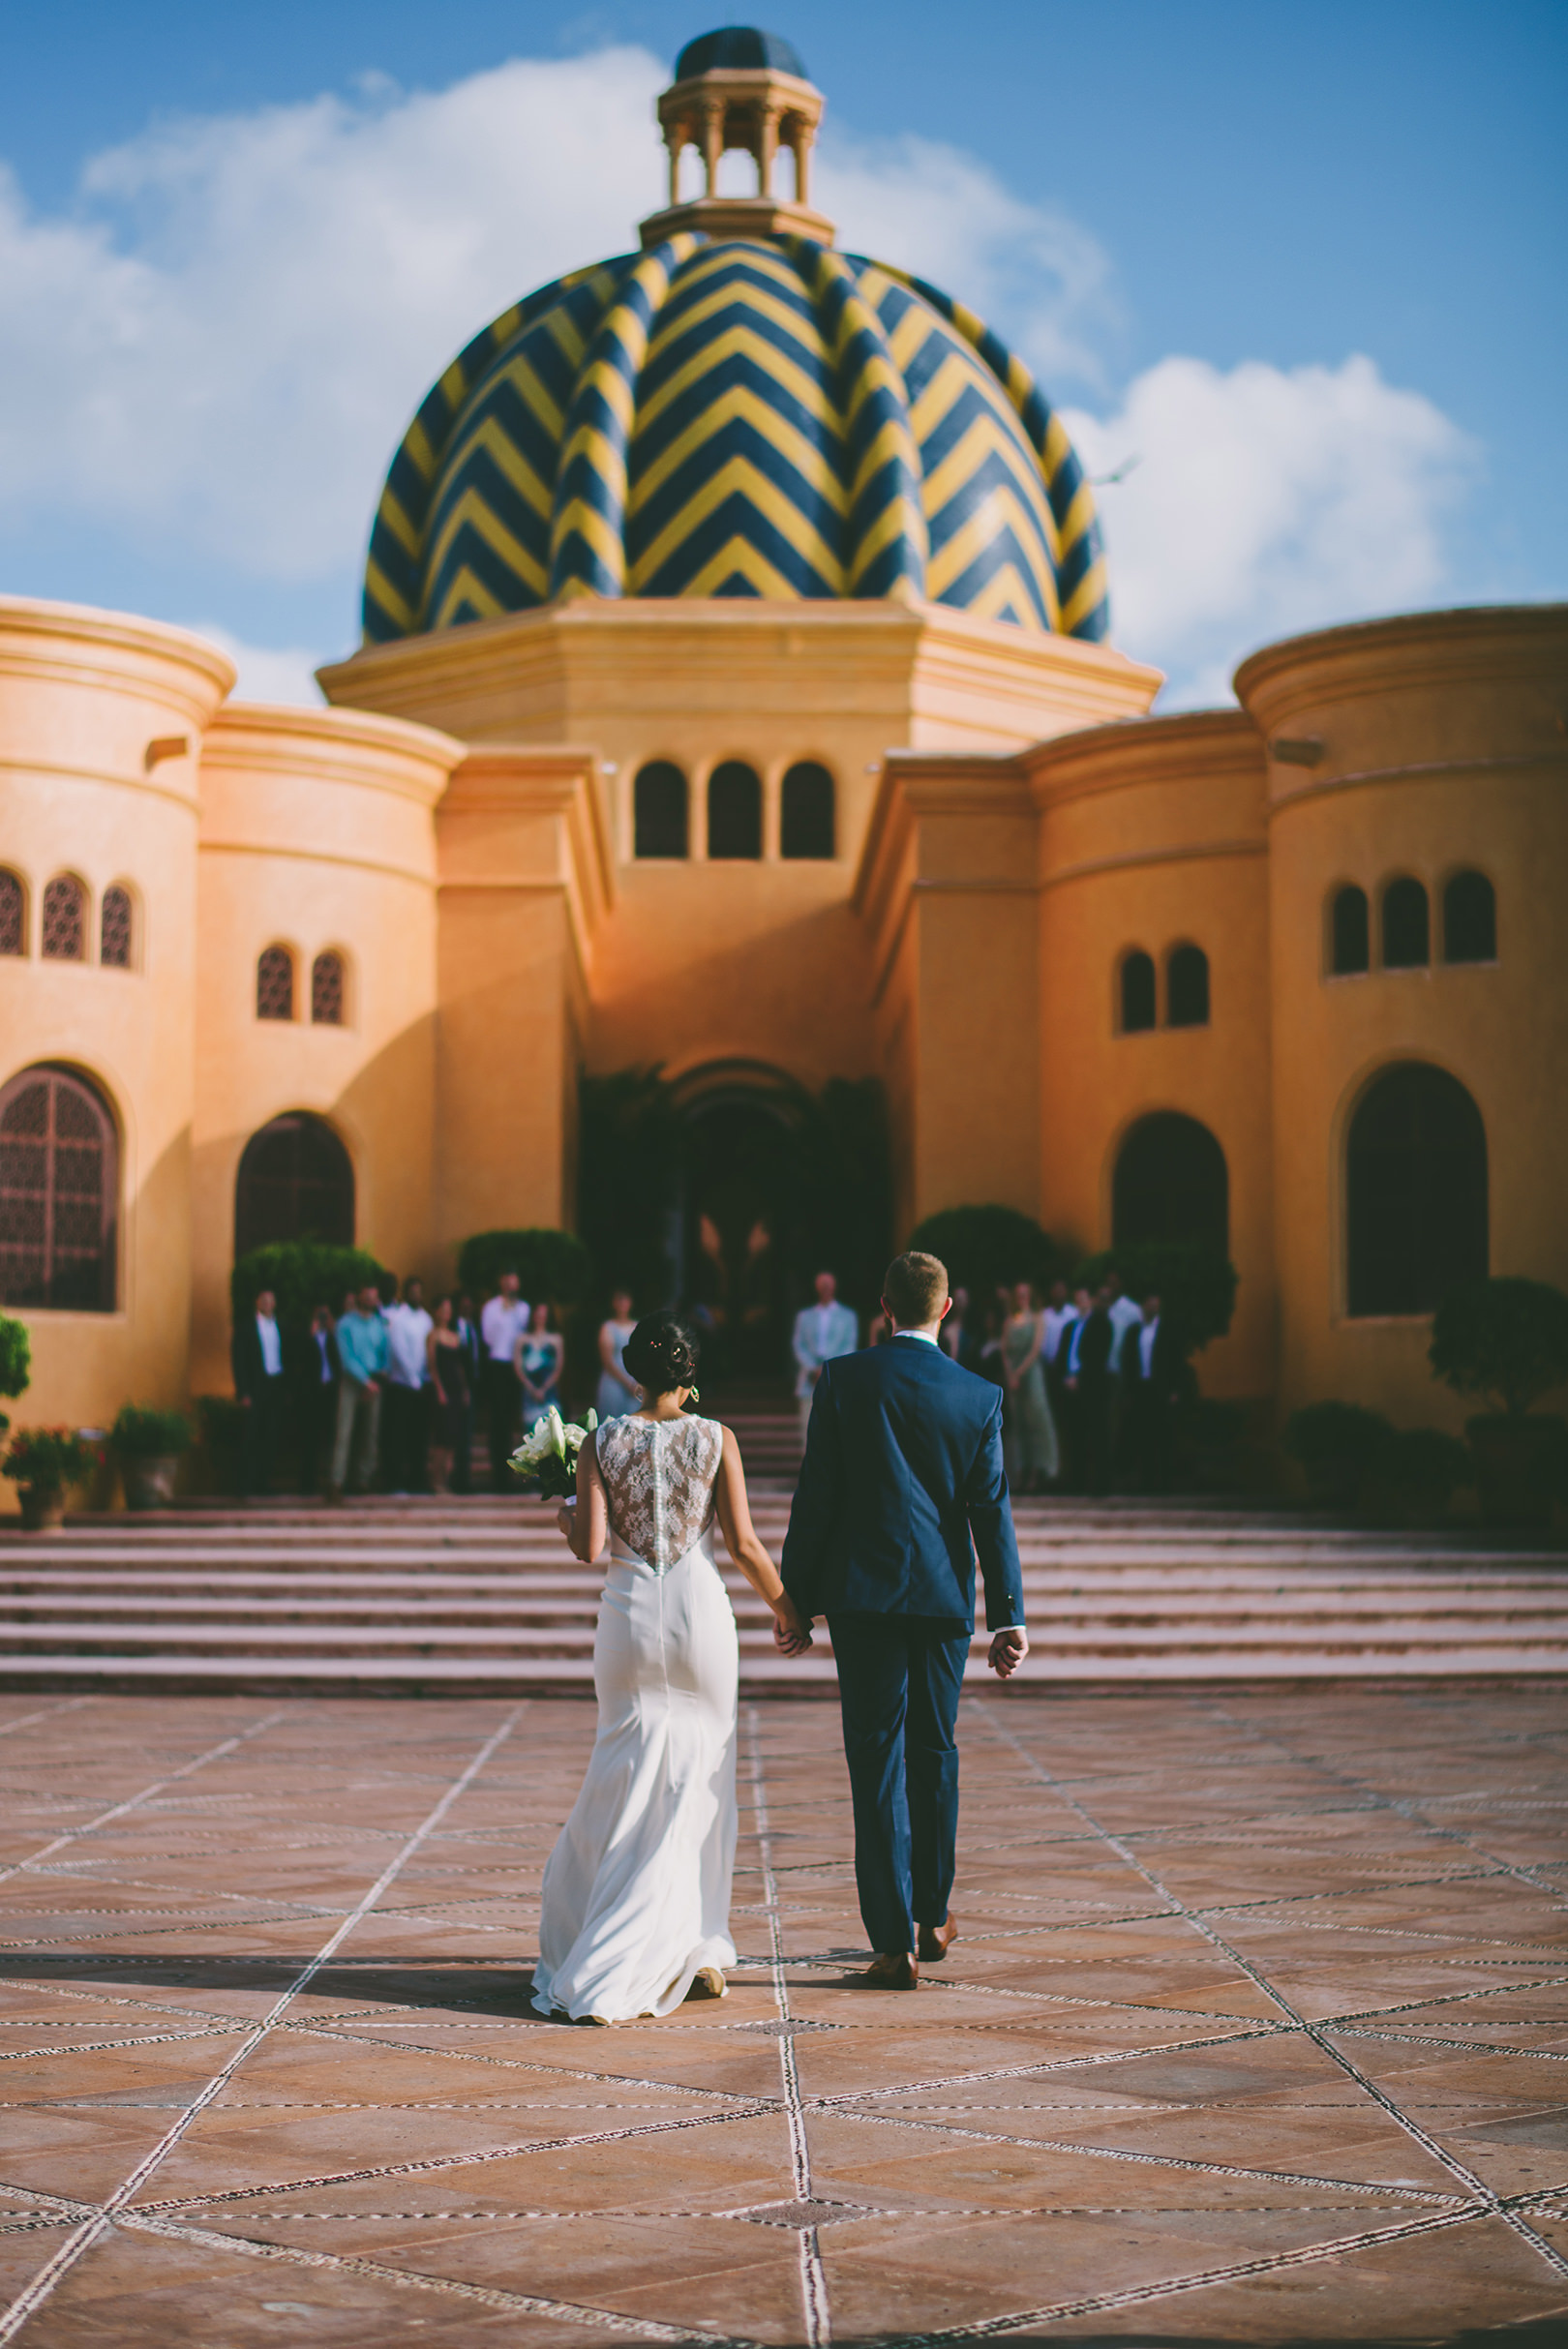 Spain Wedding Photographer - © Dallas Kolotylo Photography - 033